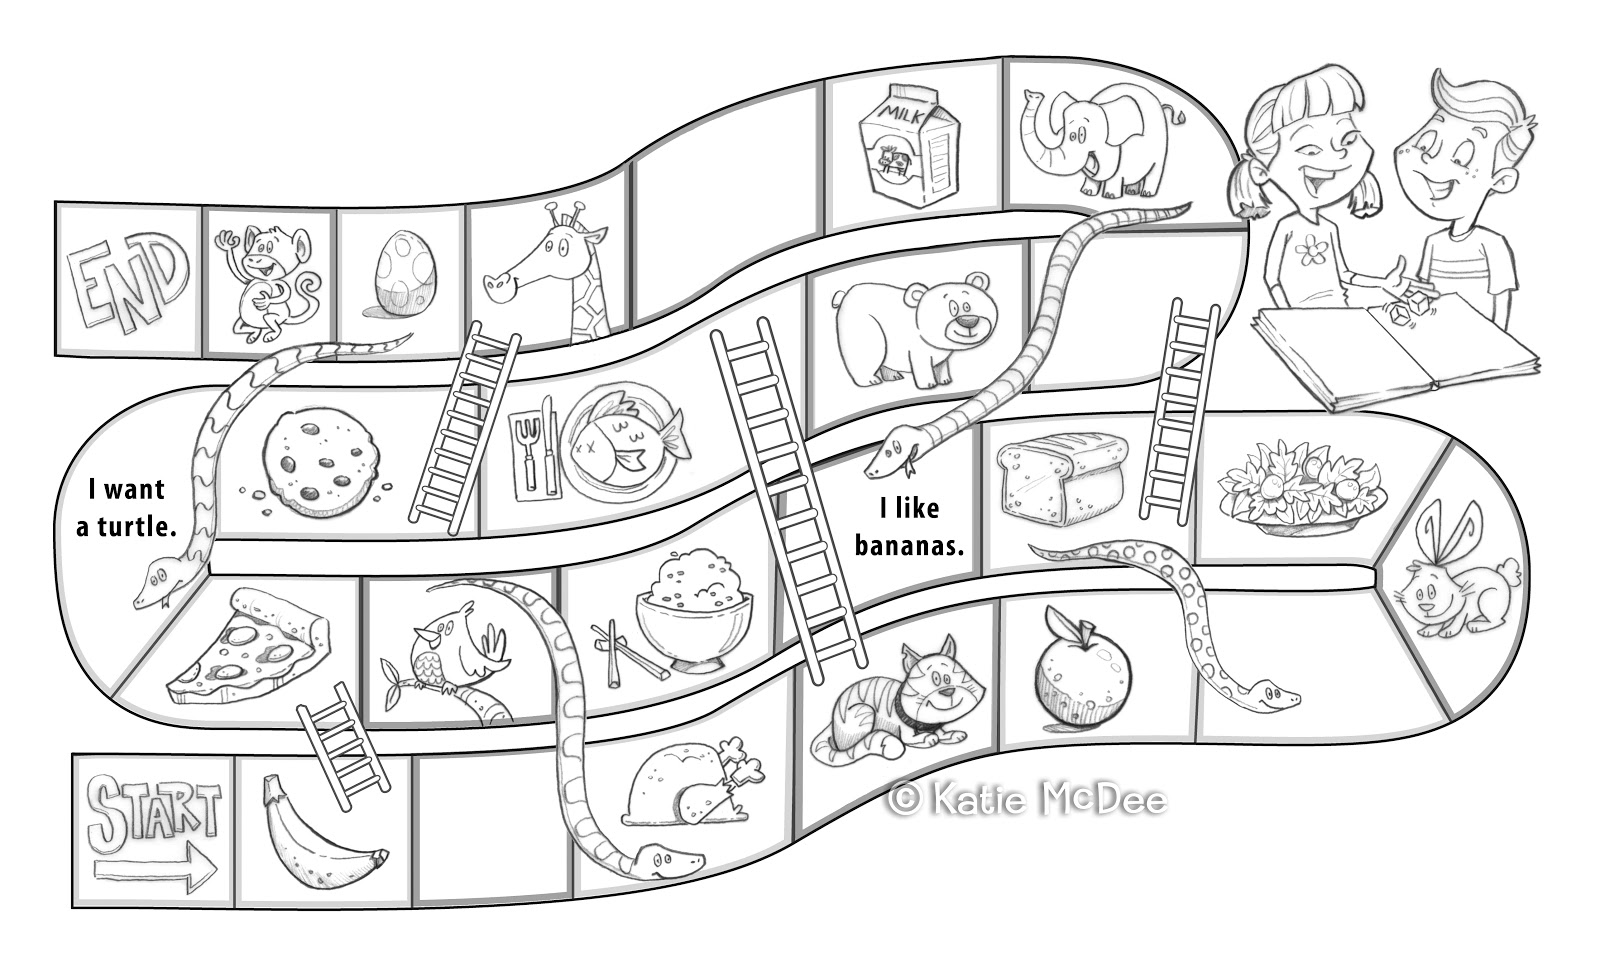 Blank Snake Board Game Sketch Coloring Page